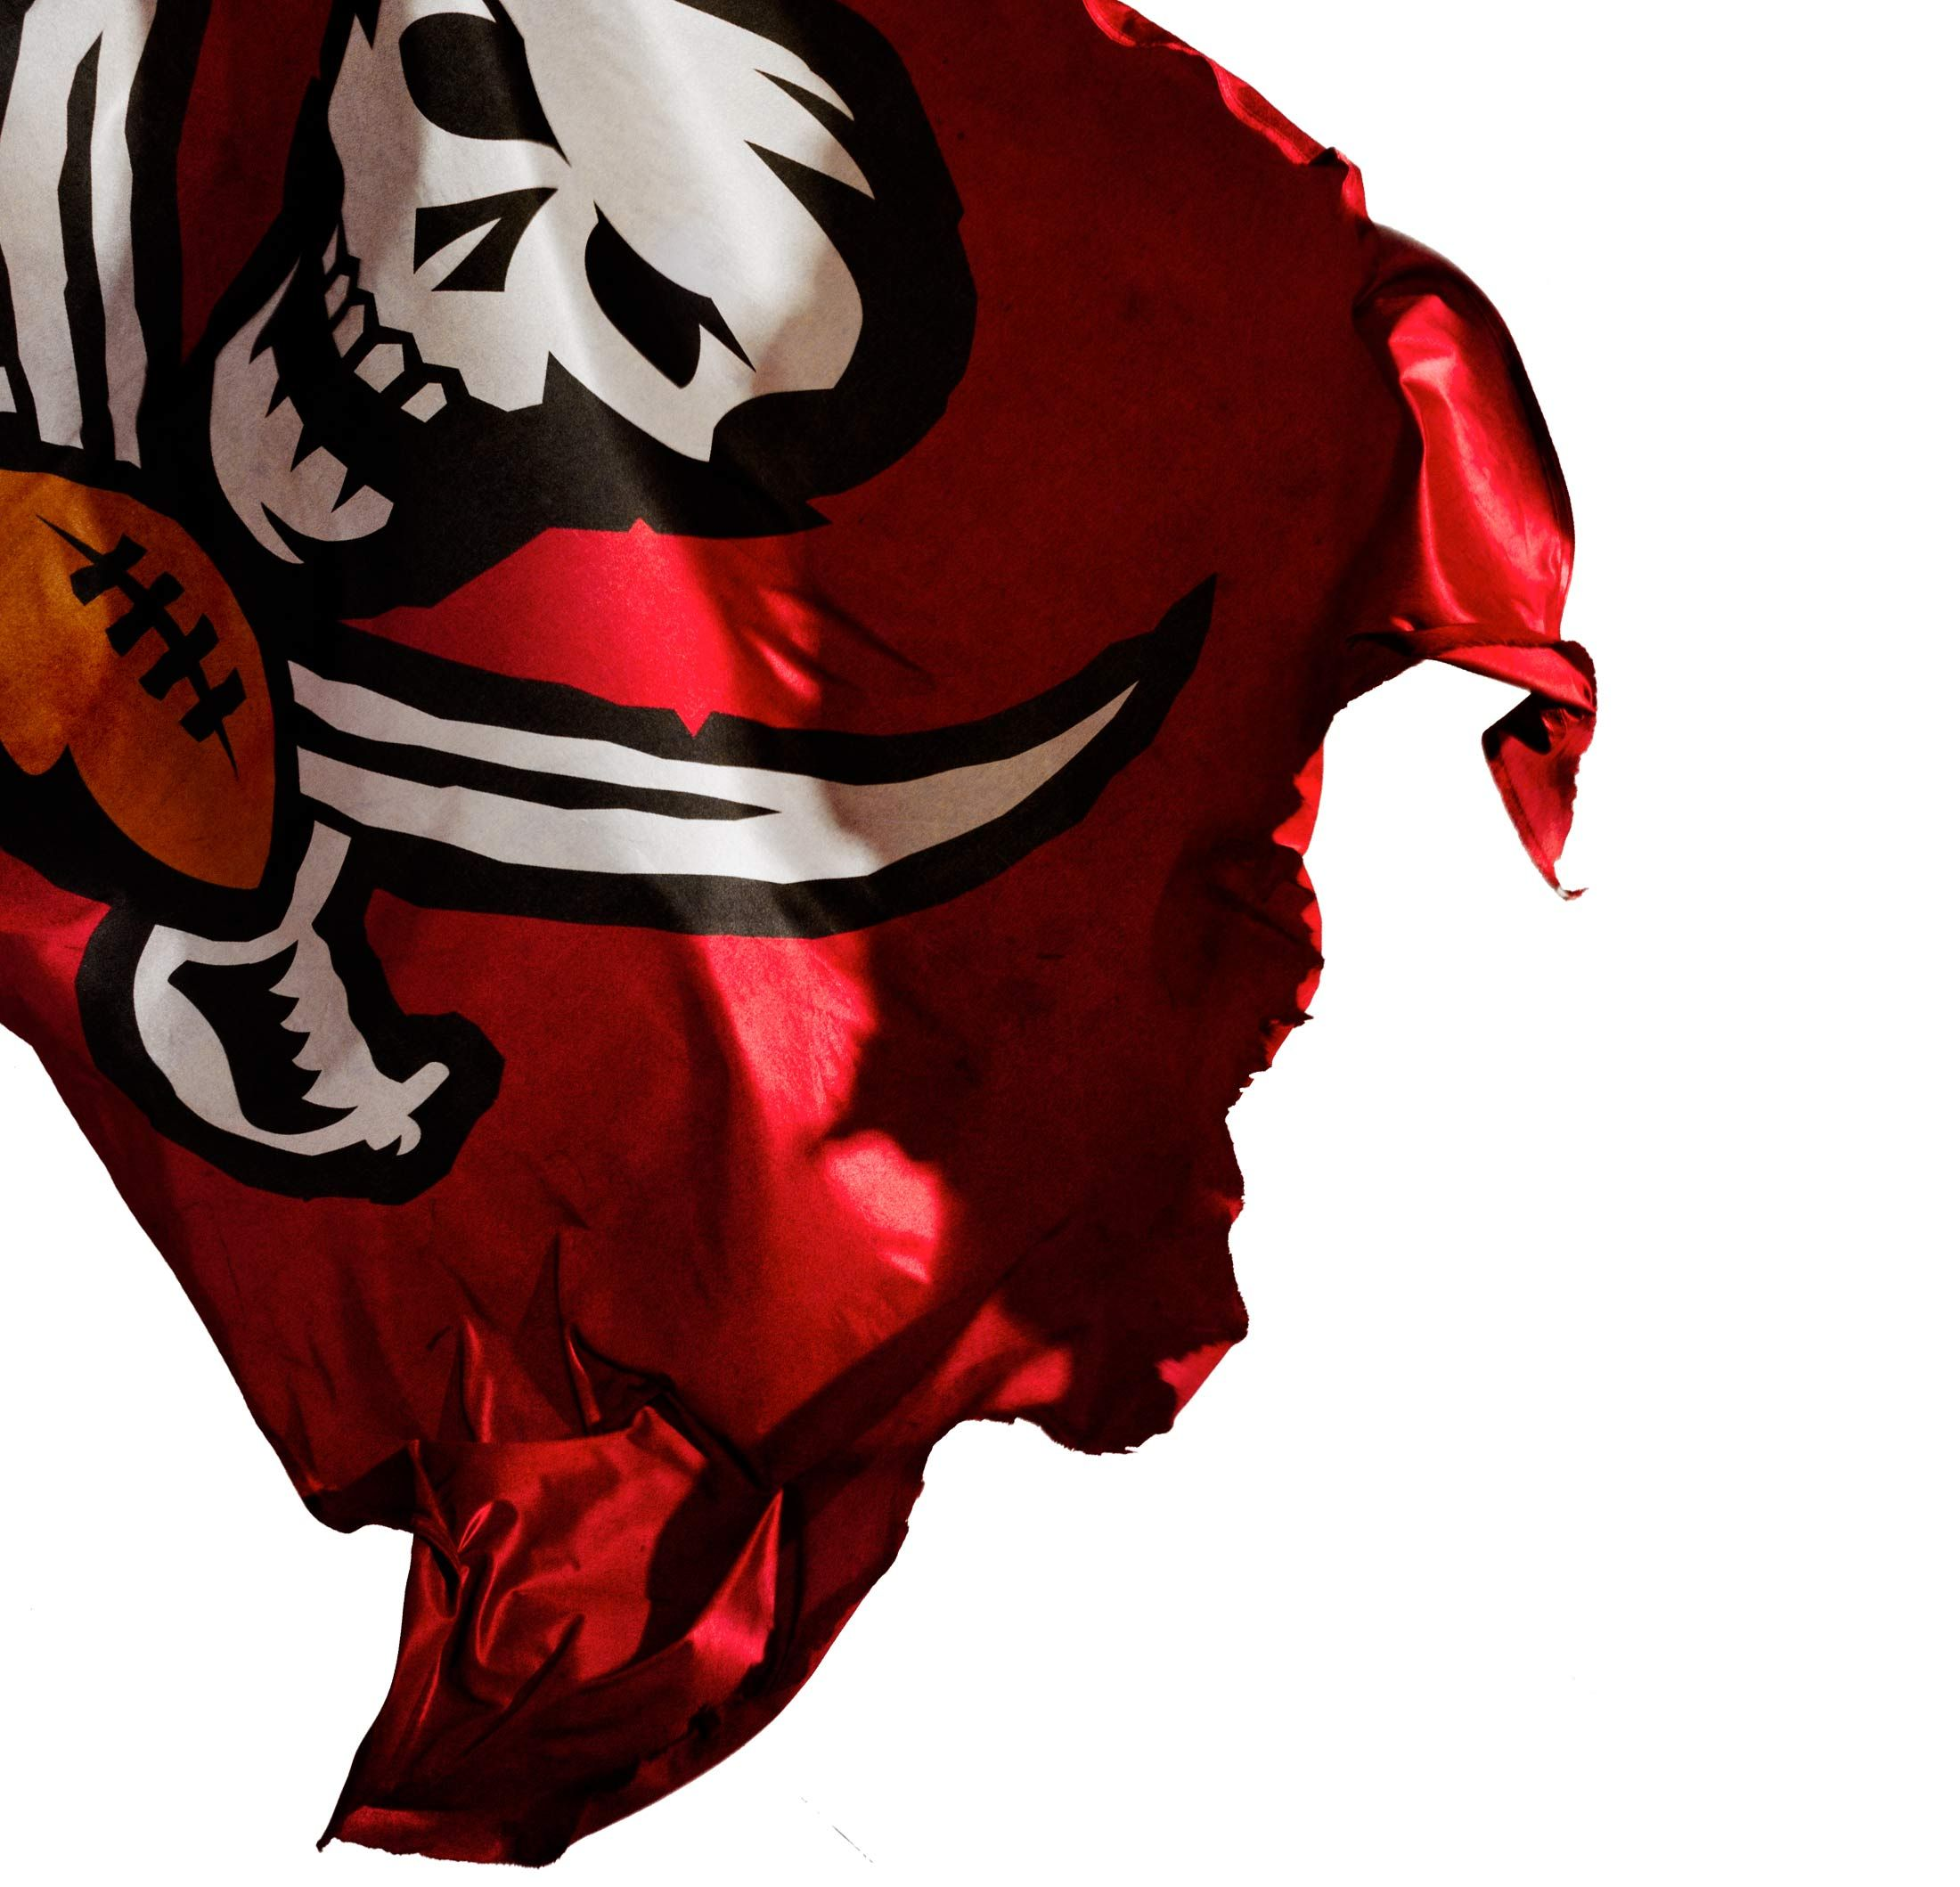 Tampa Bay Buccaneers Raise The Flag Tampa Bay Buccaneers Tampa Buccaneers Tampa Bay Bucs